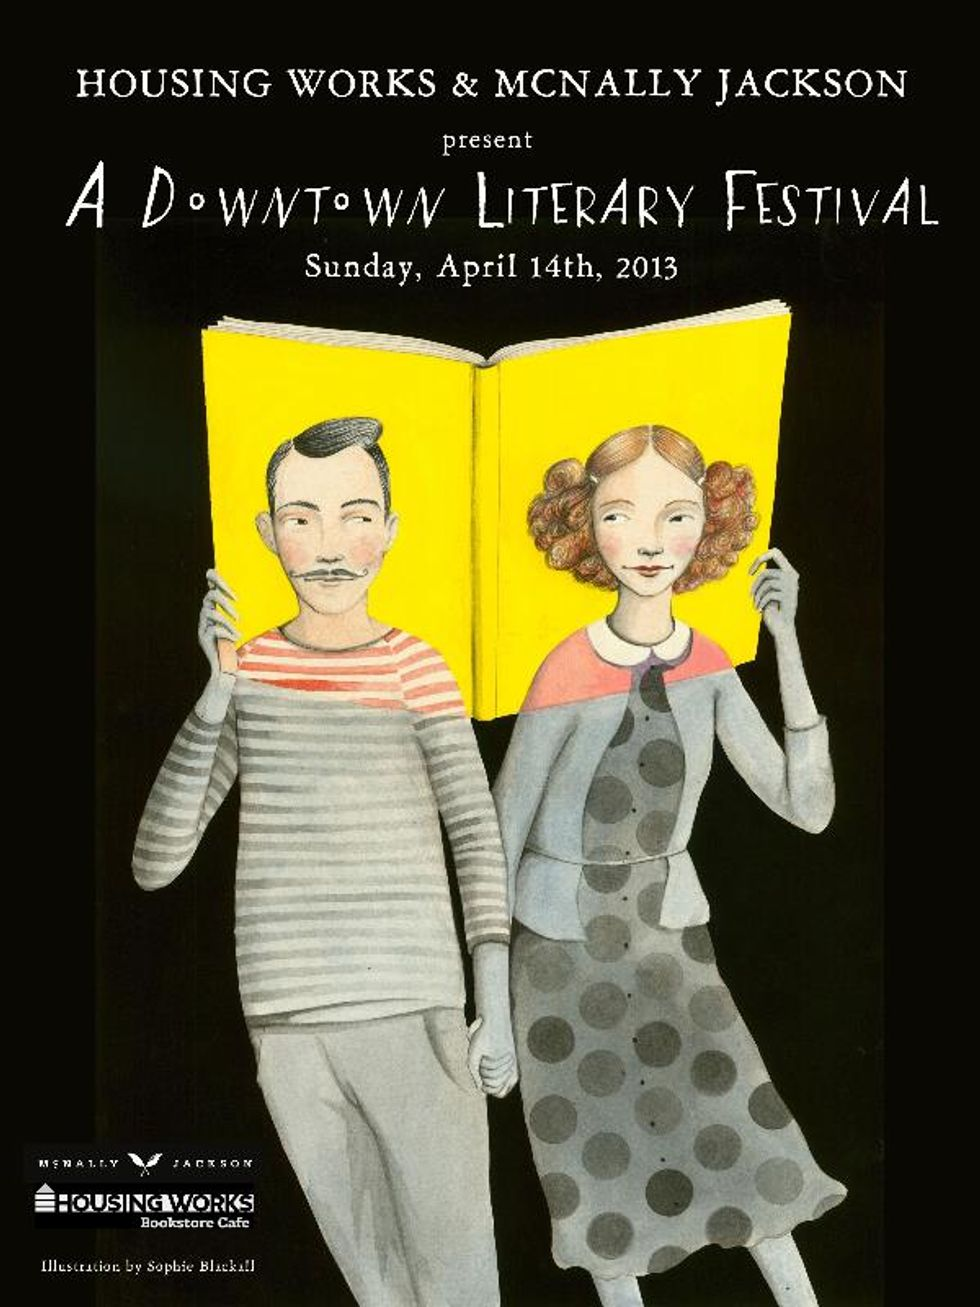 Booksellers Team Up for the Downtown Literary Festival